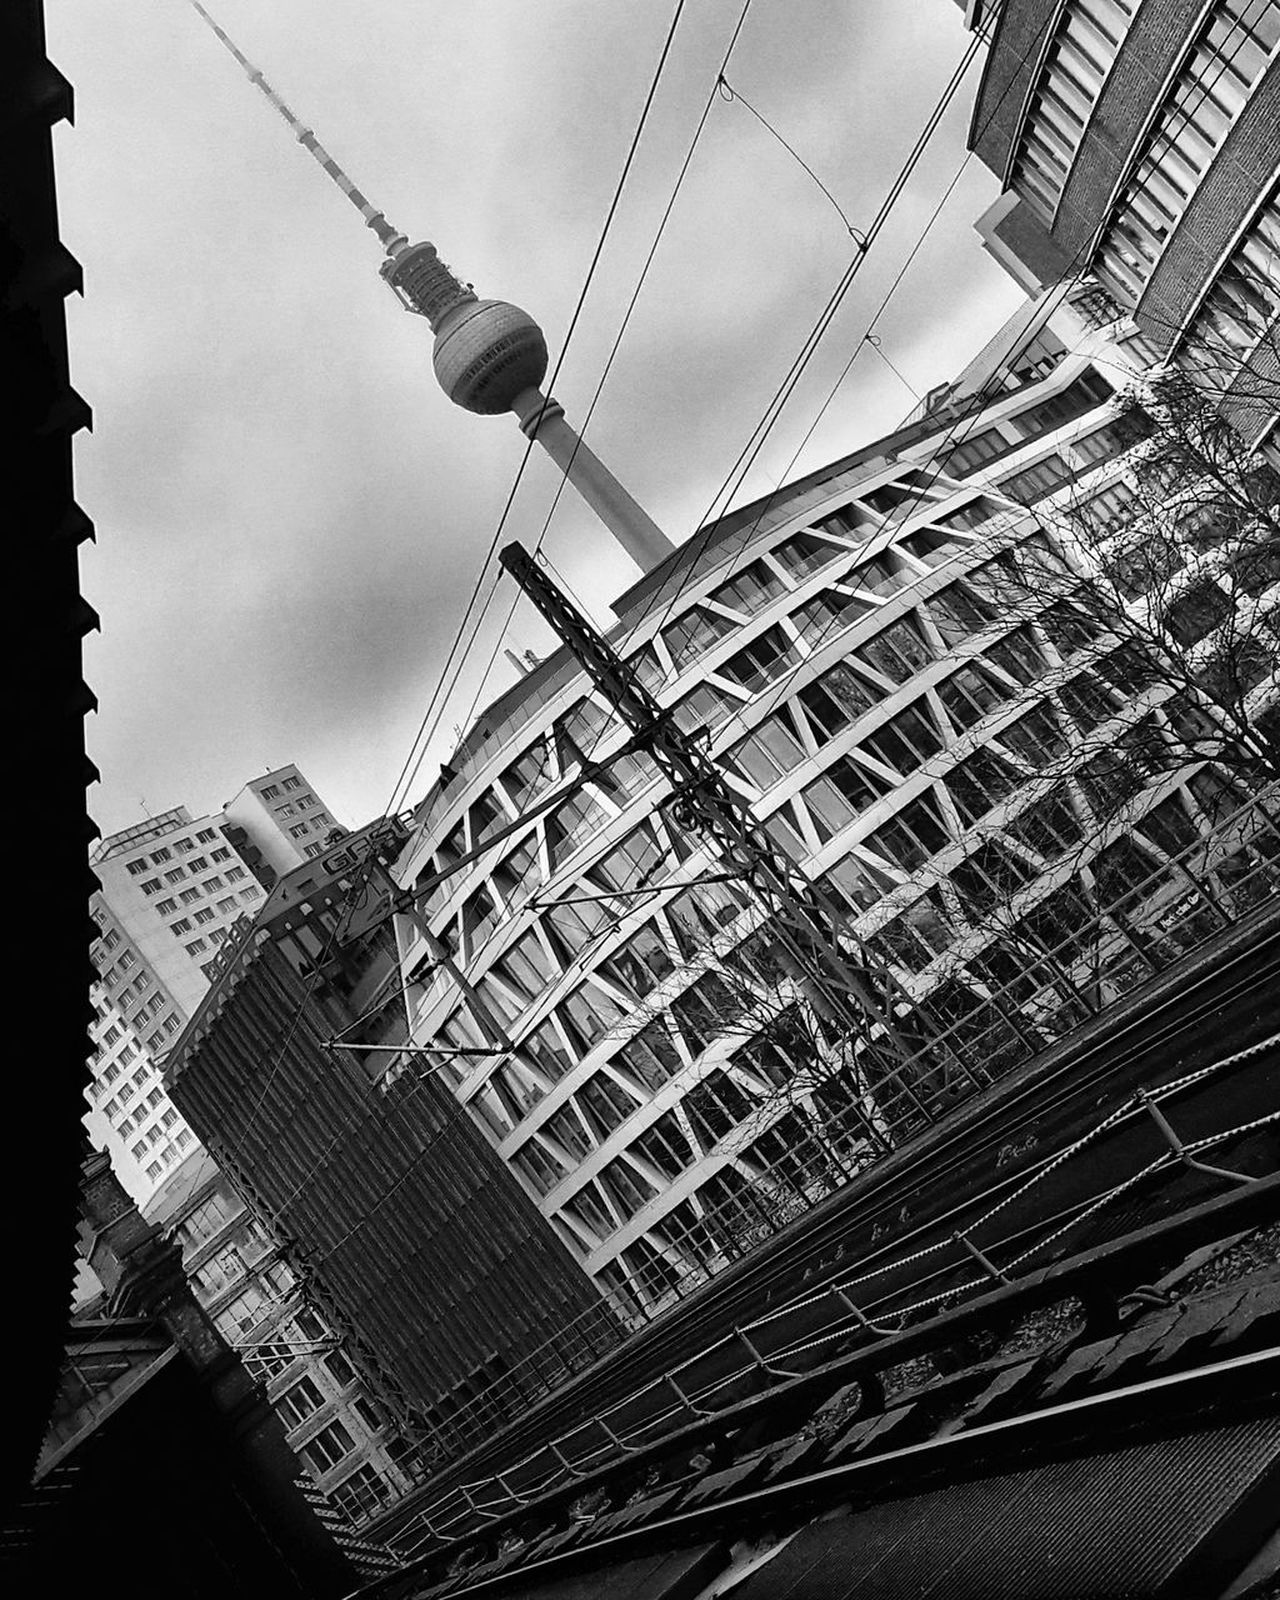 Pattern Low Angle View Sky No People Close-up Architecture Day Berliner Ansichten Berlin Photography Tvtowerberlin Mobilephotography Blackandwhite Blackandwhitephotography Geometry